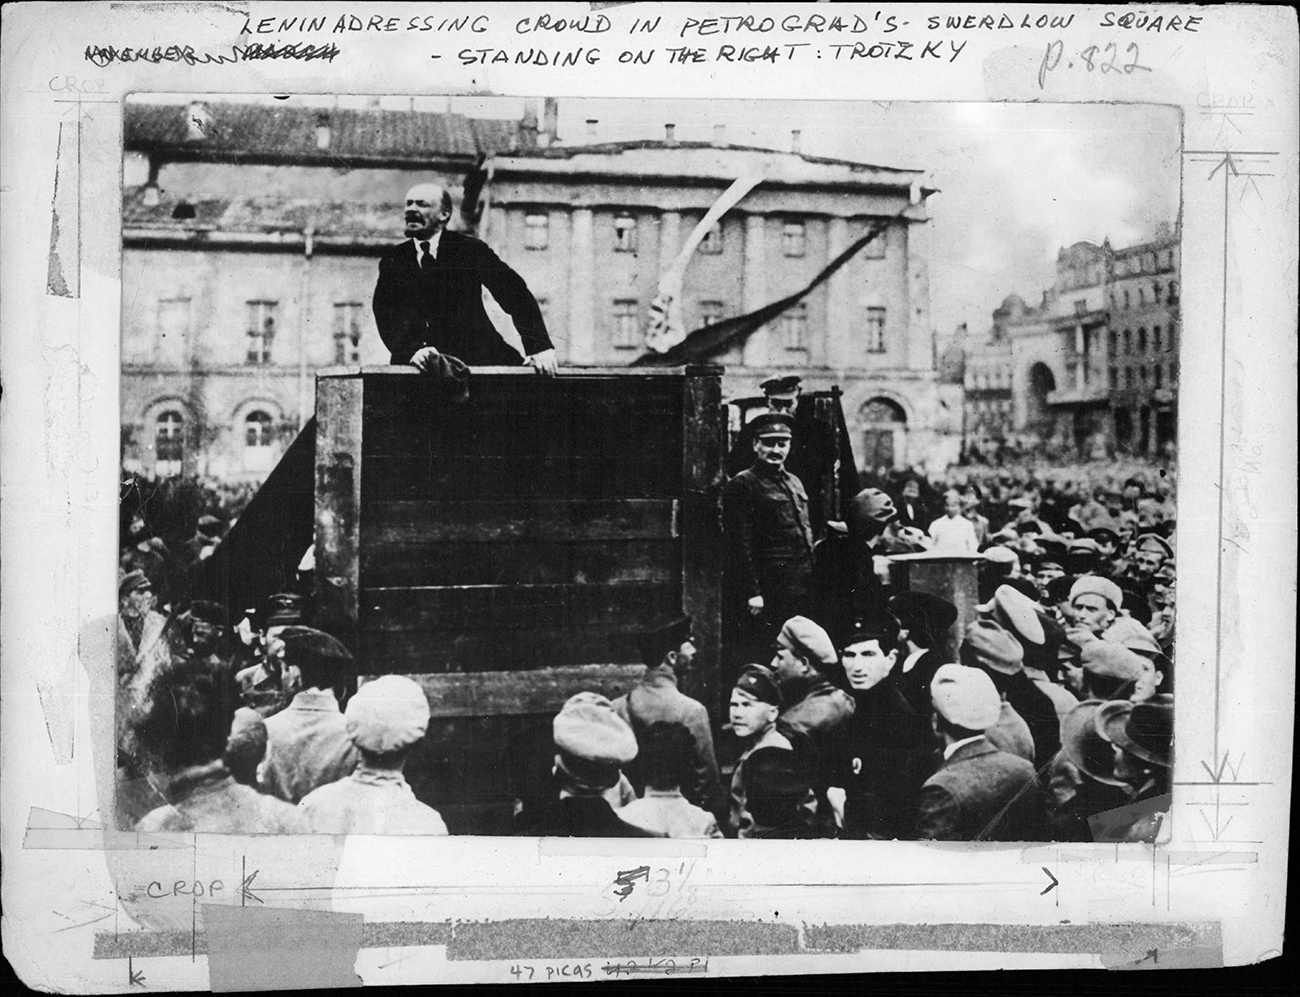 Lenin Addressing Crowd In Petrograd's Swerdlow Square 1919 - standing on the right - Trotzky.